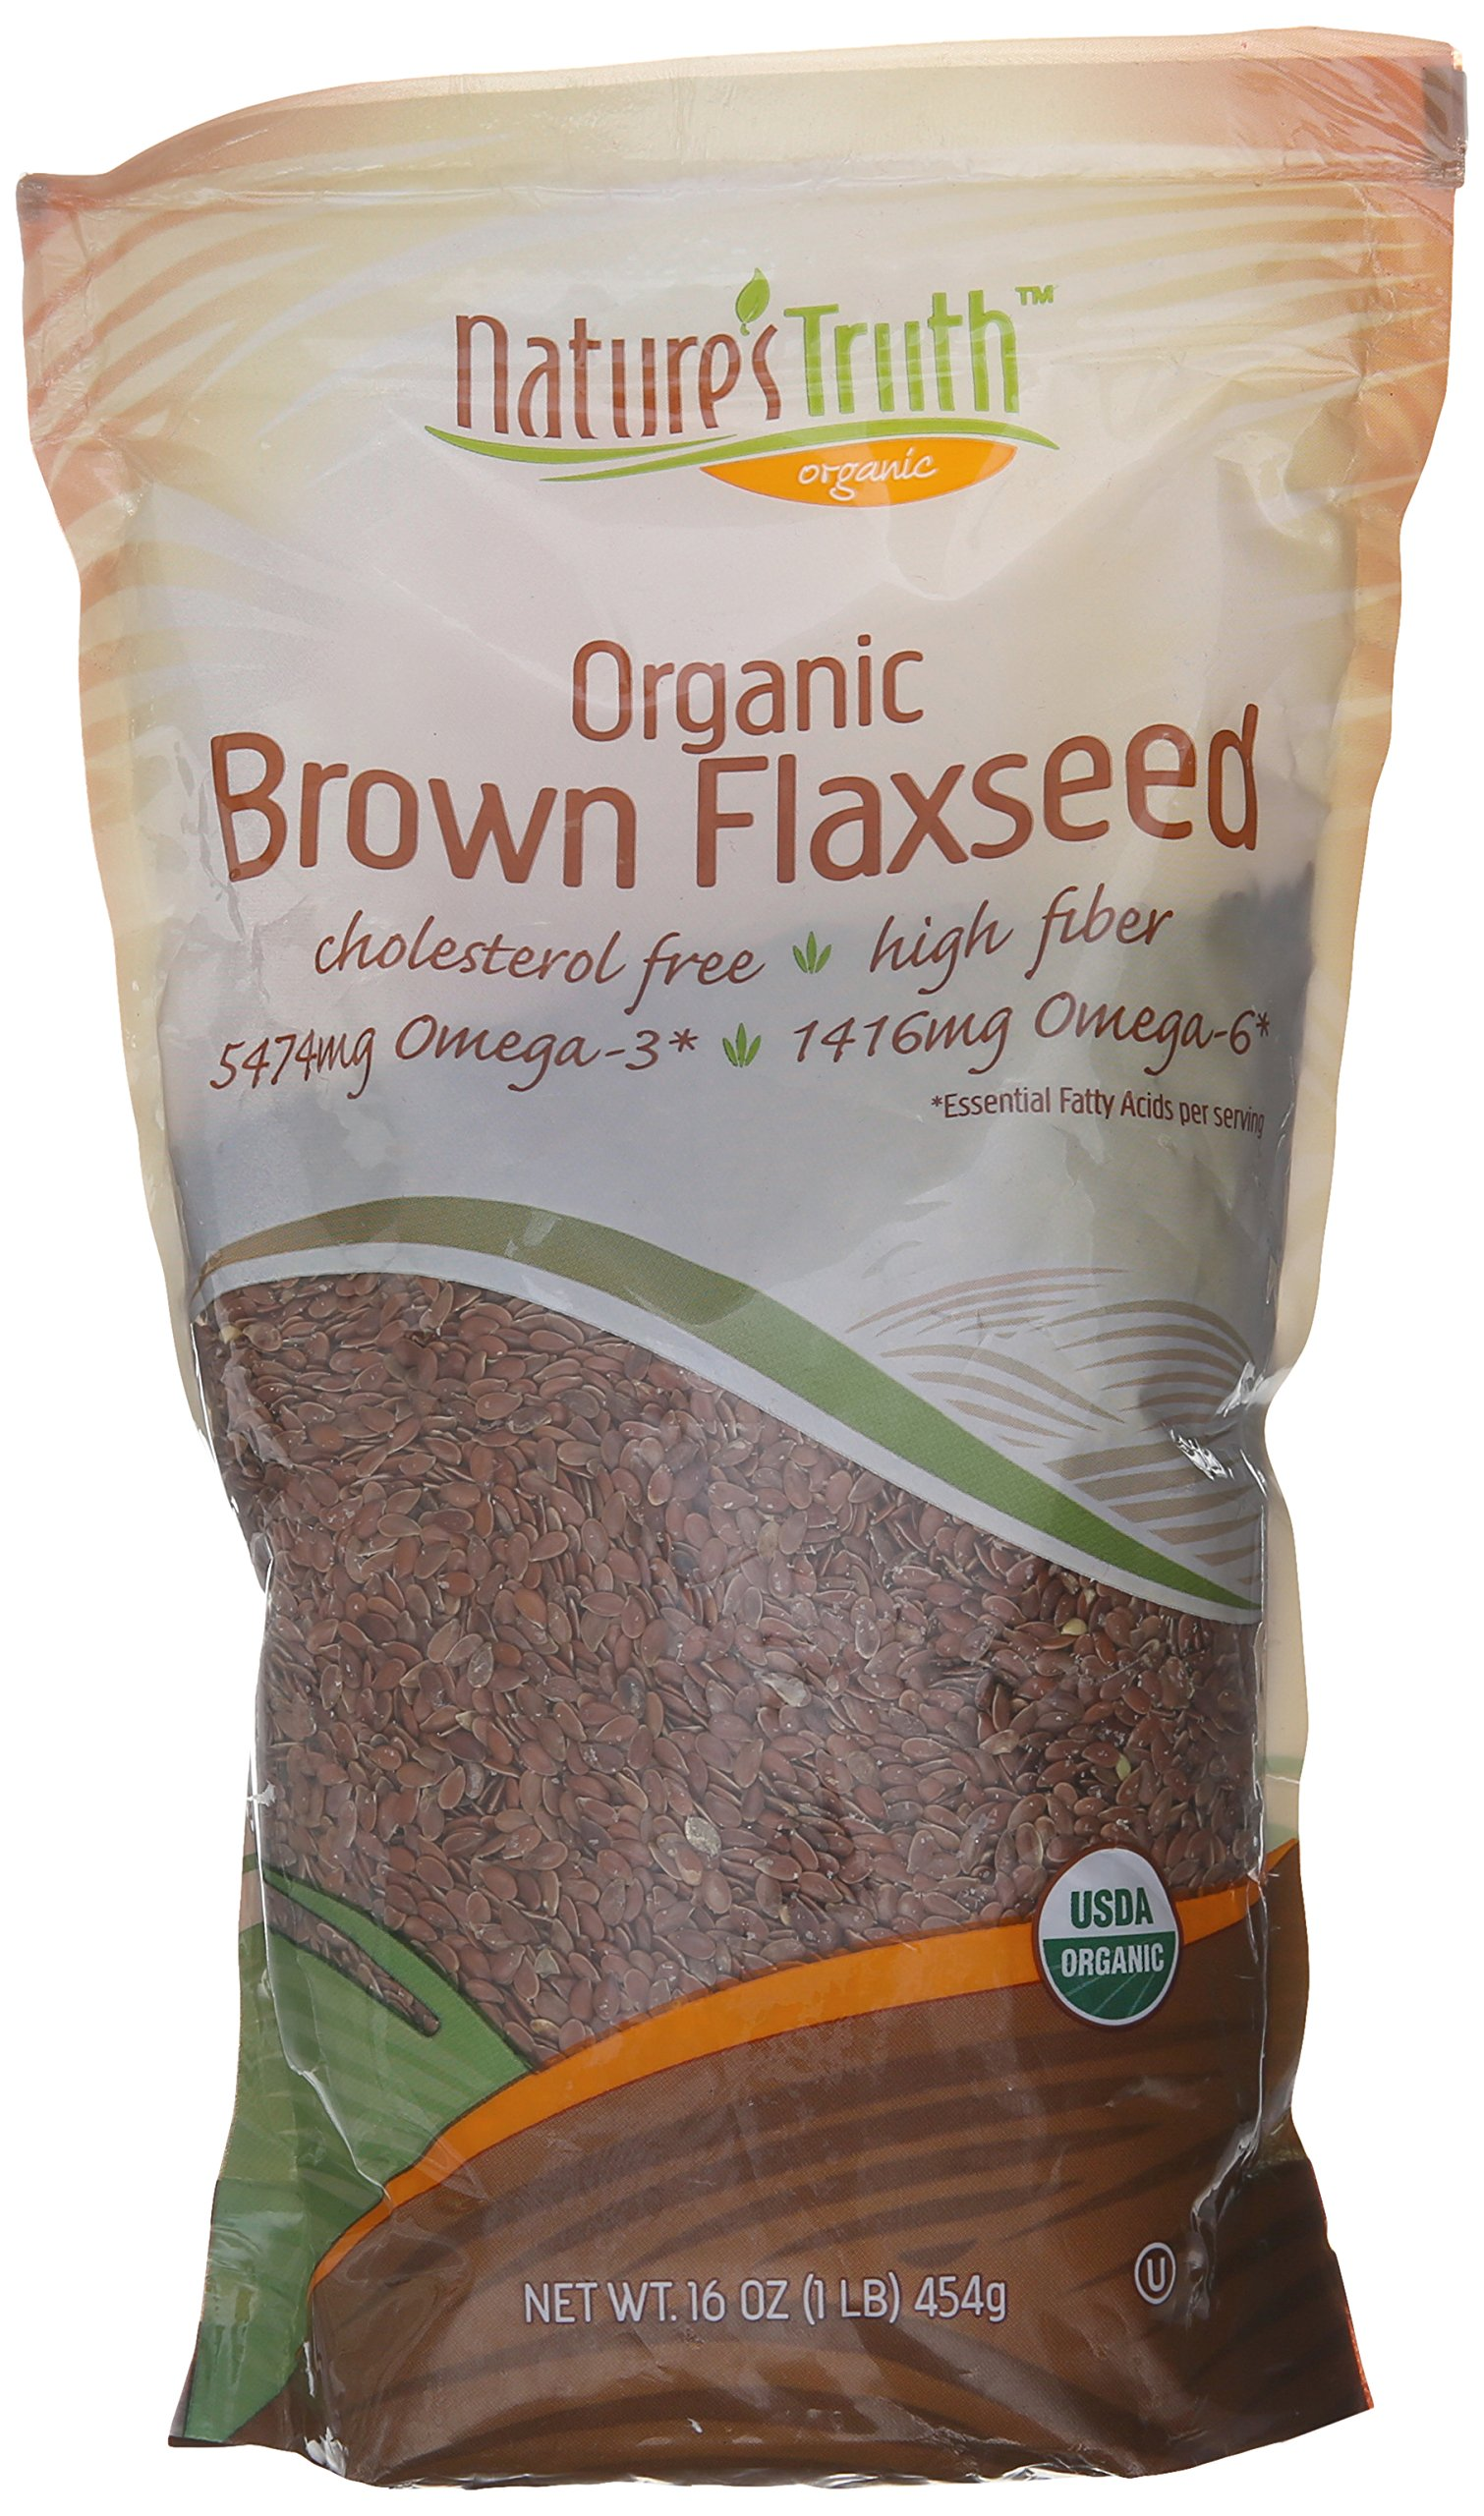 Nature's Truth Whole Brown Flax Seed, 16 Ounce